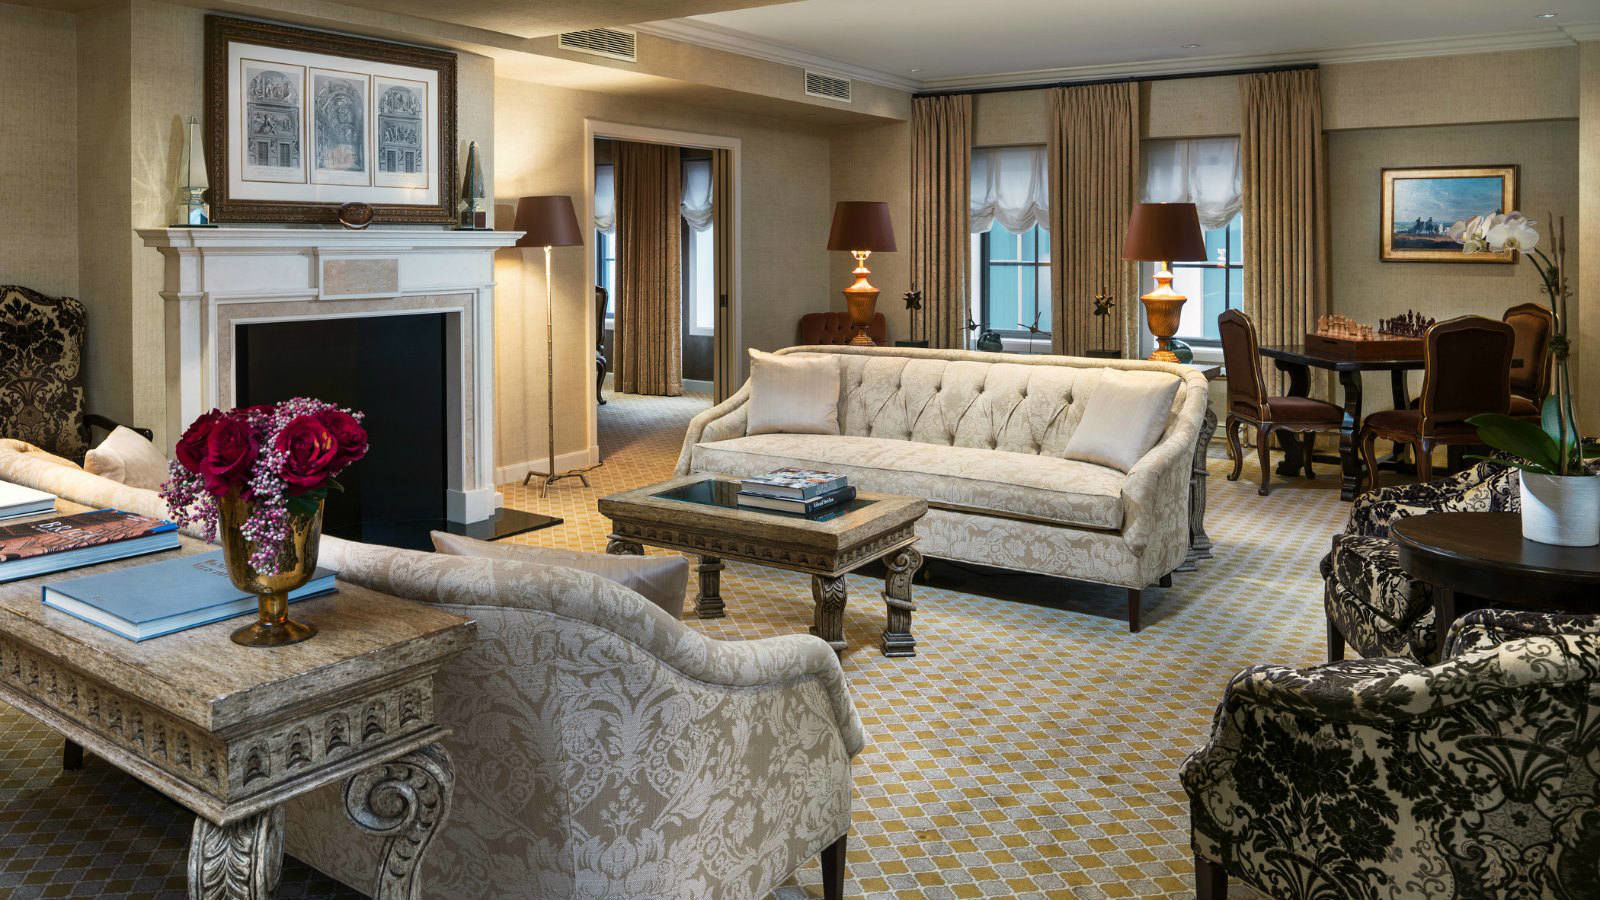 The St. Regis Washington, D.C. - Presidential Suite Living Room